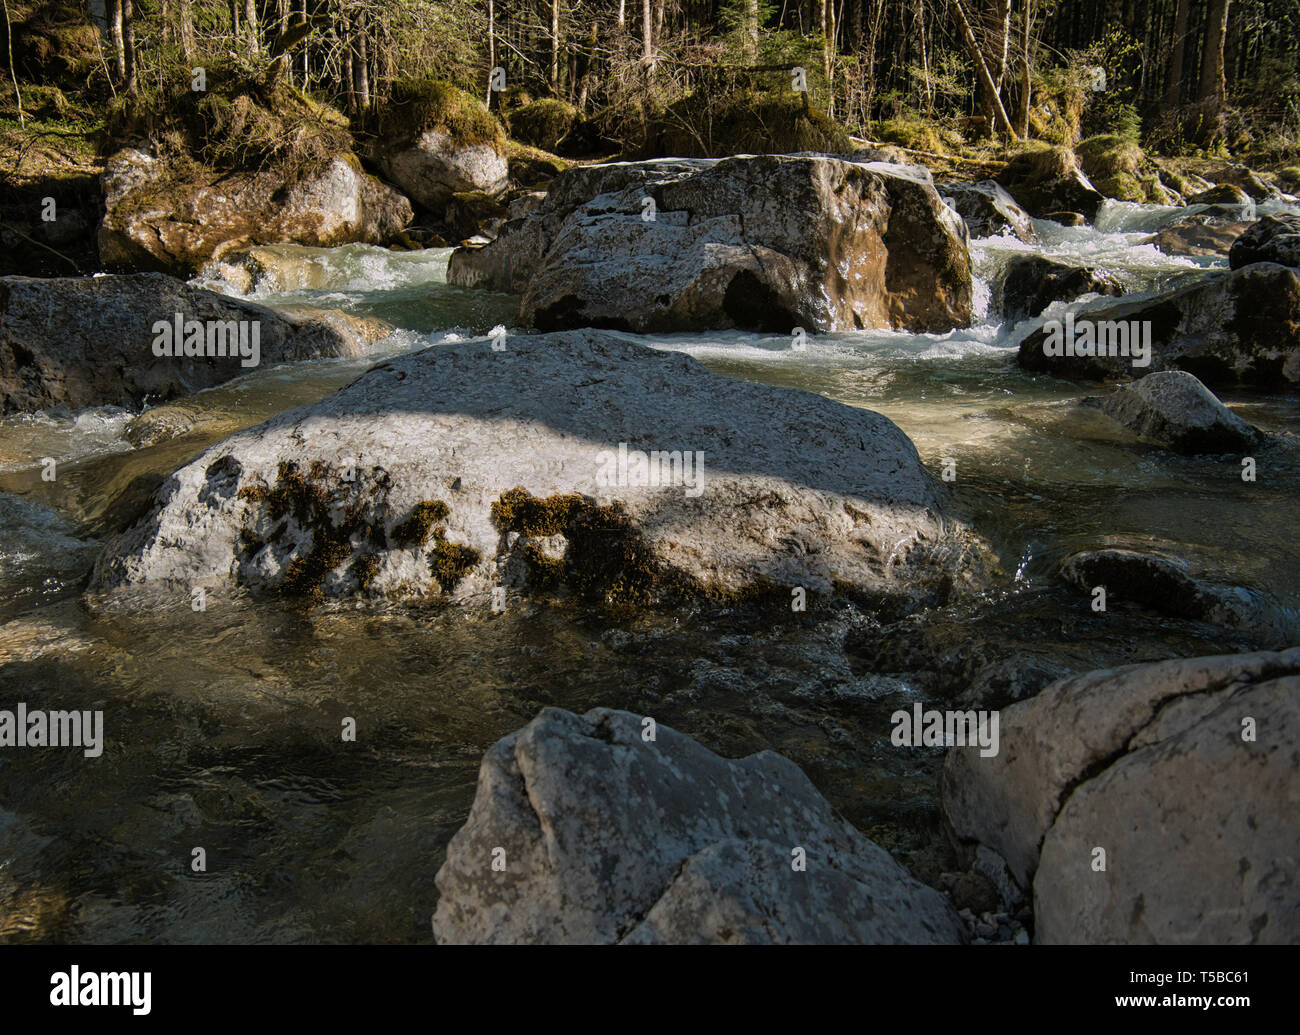 Big rocks in a mountain stream in Bavaria with the forest in the background - Stock Image